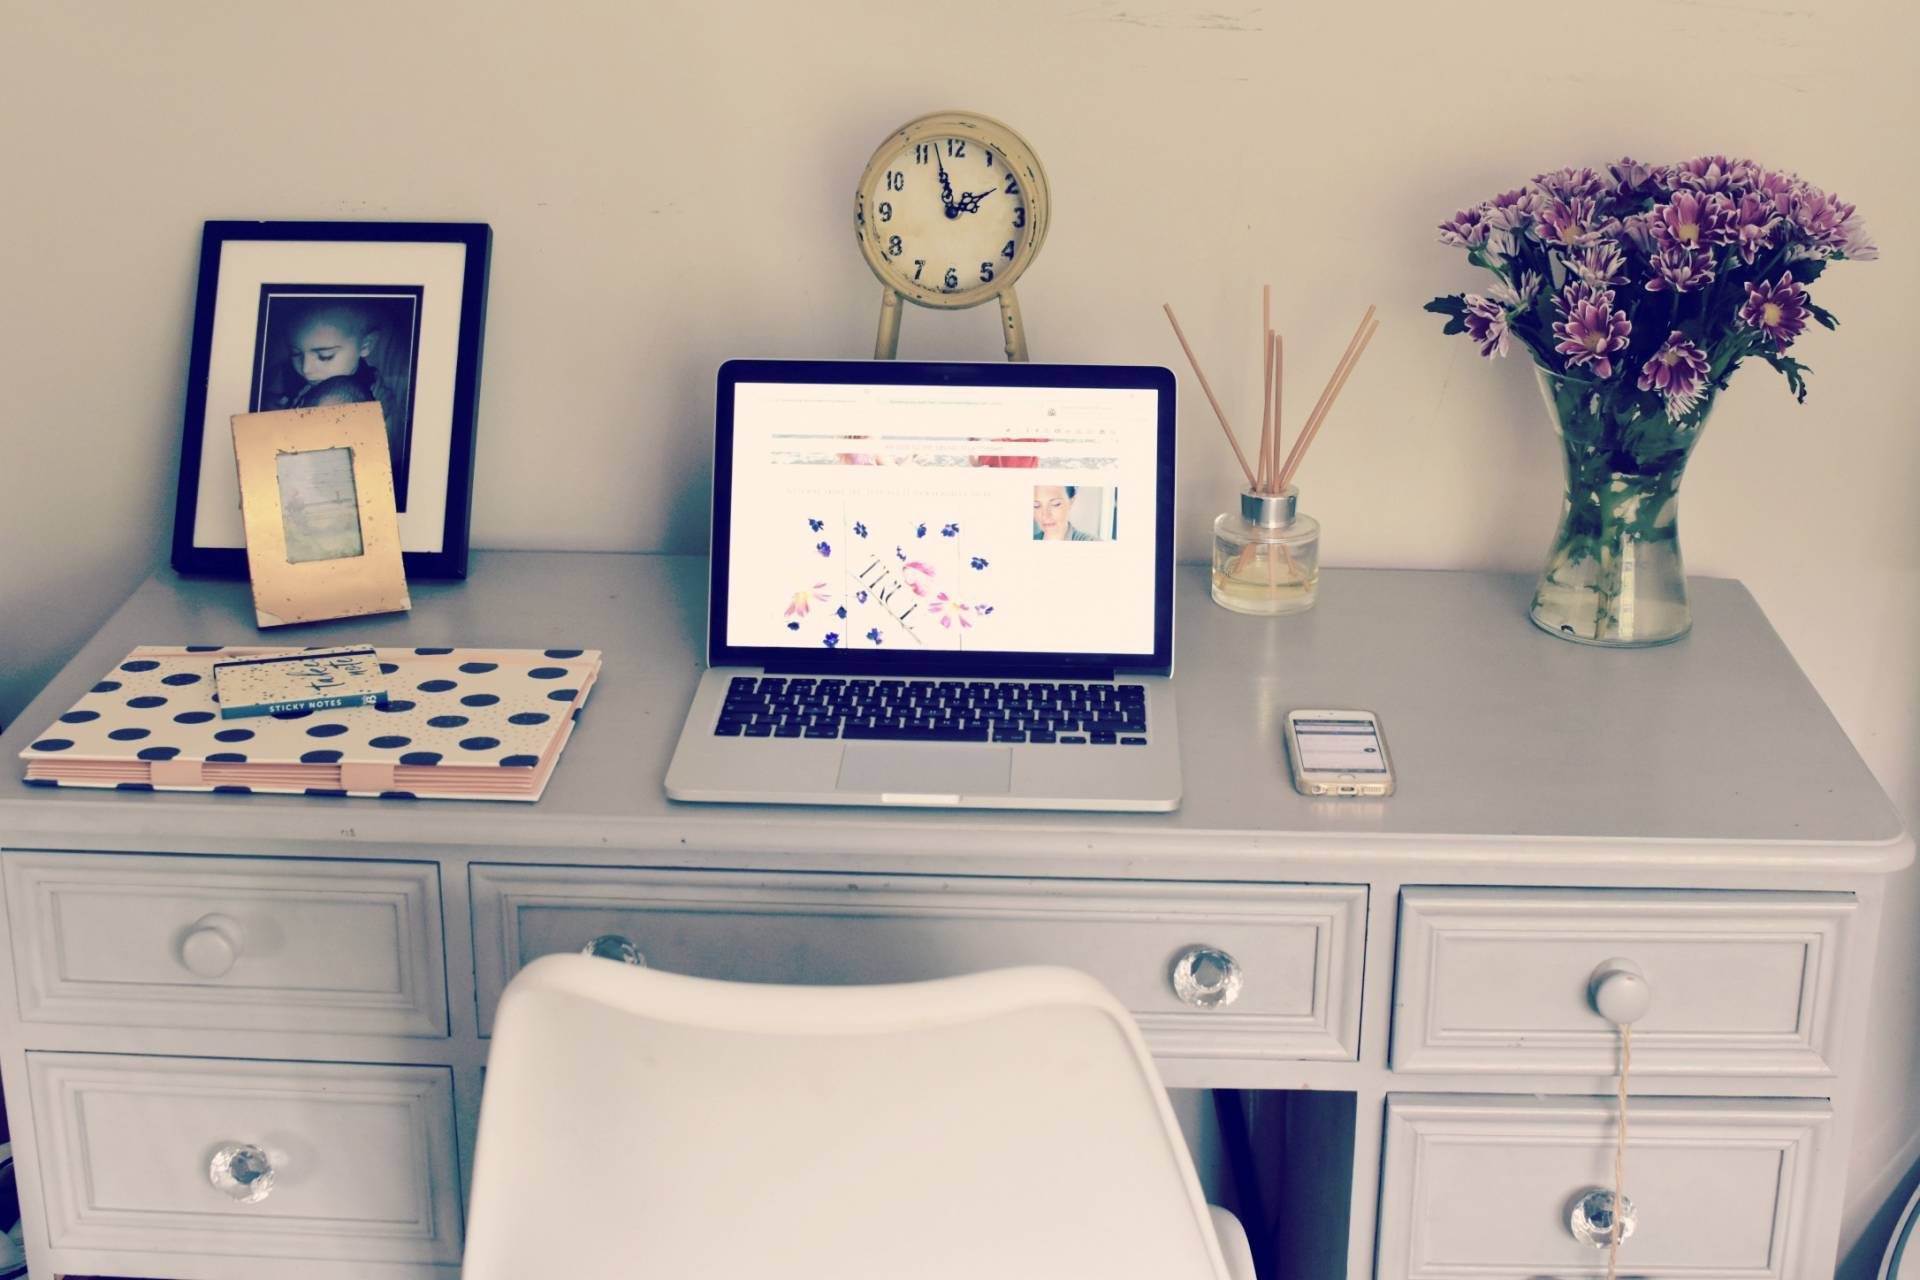 f you're looking to make your business more environmentally friendly then why not consider running a paperless office? Starting with my own small